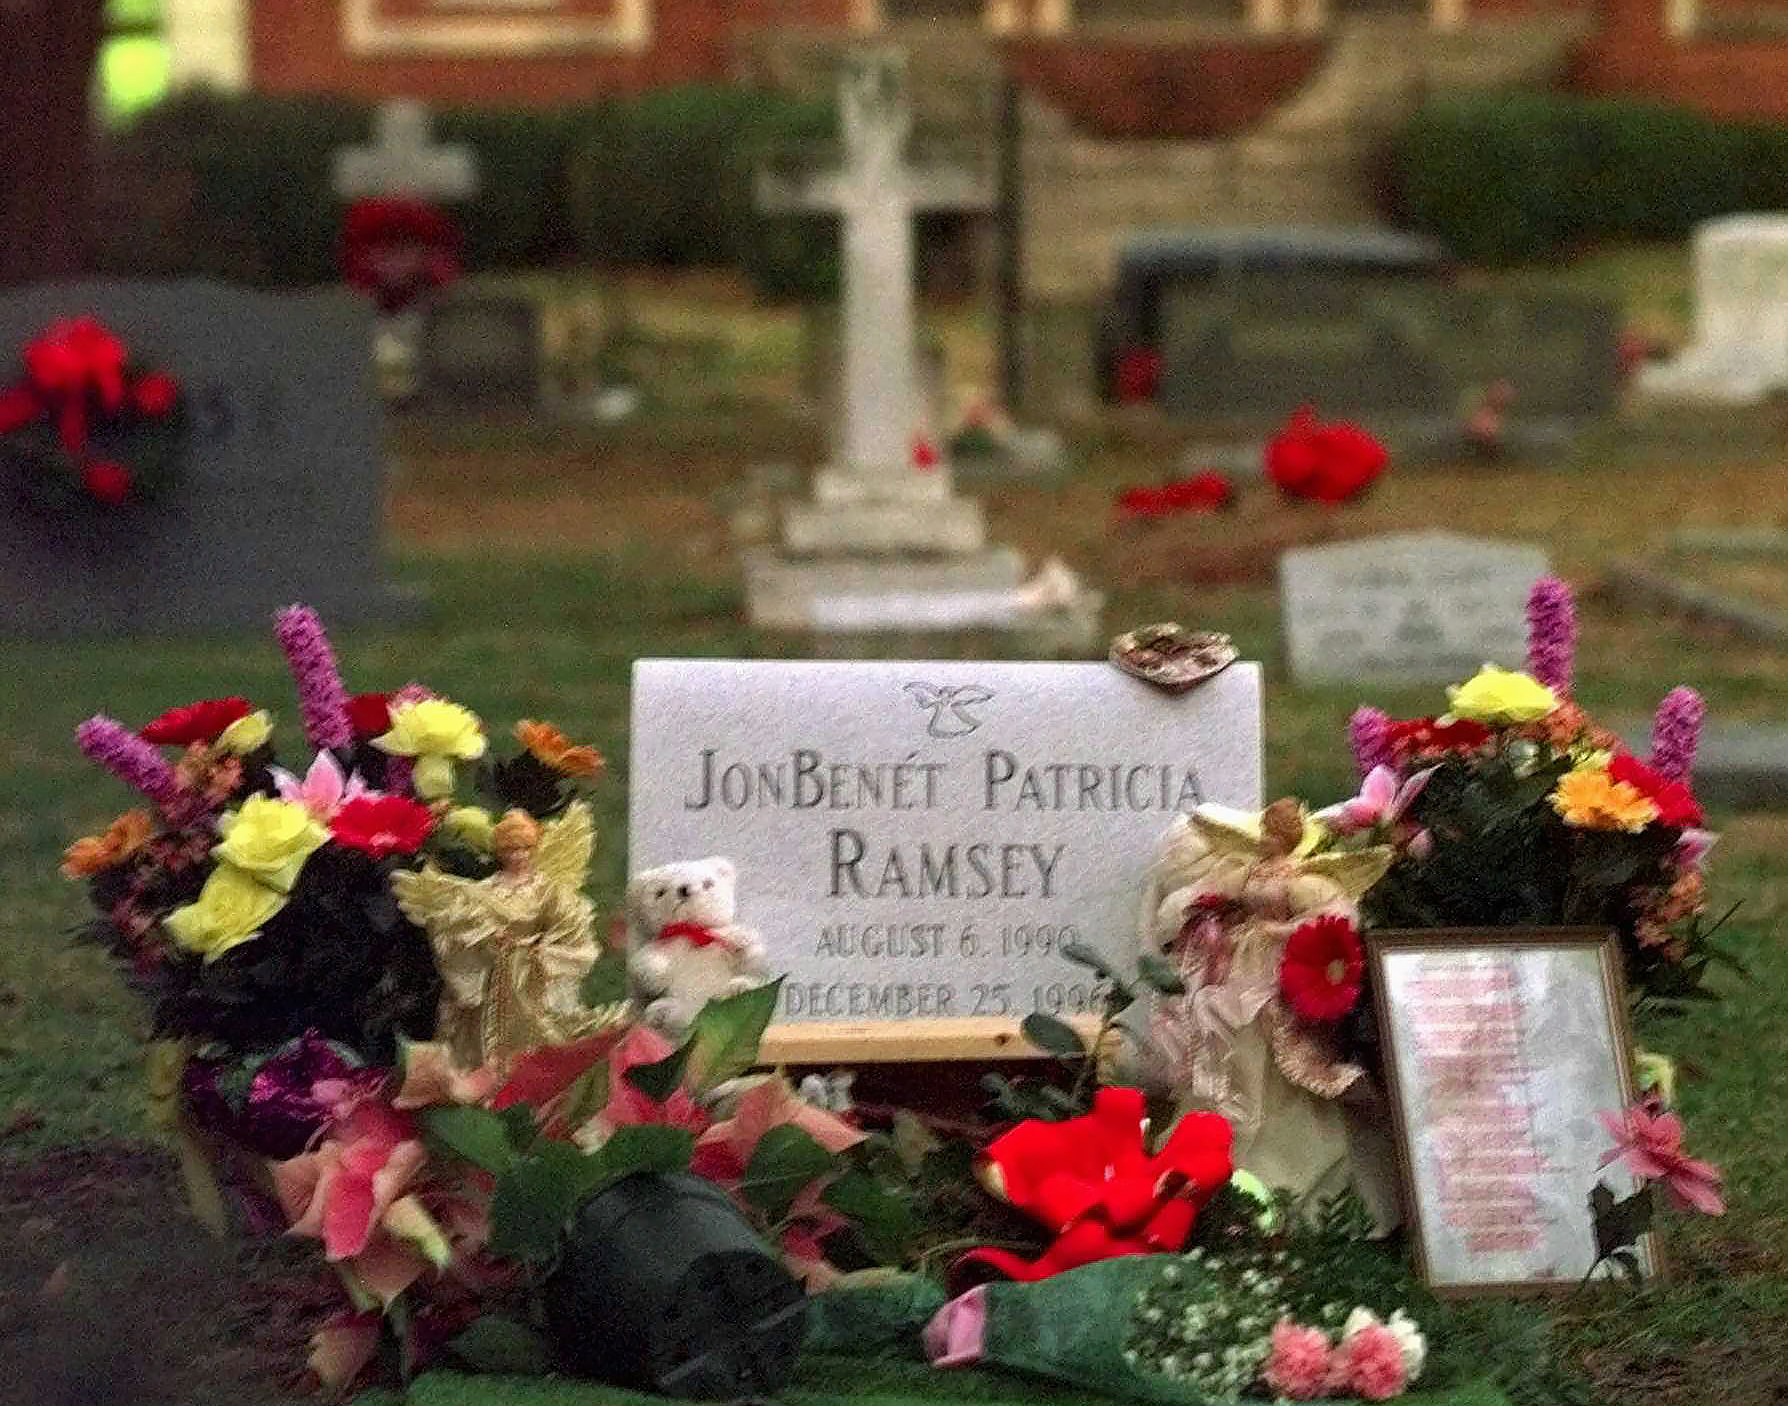 JonBenet Ramsey's Half-Brother Recalls the 'Awful' Moment He Found Out About Her Death